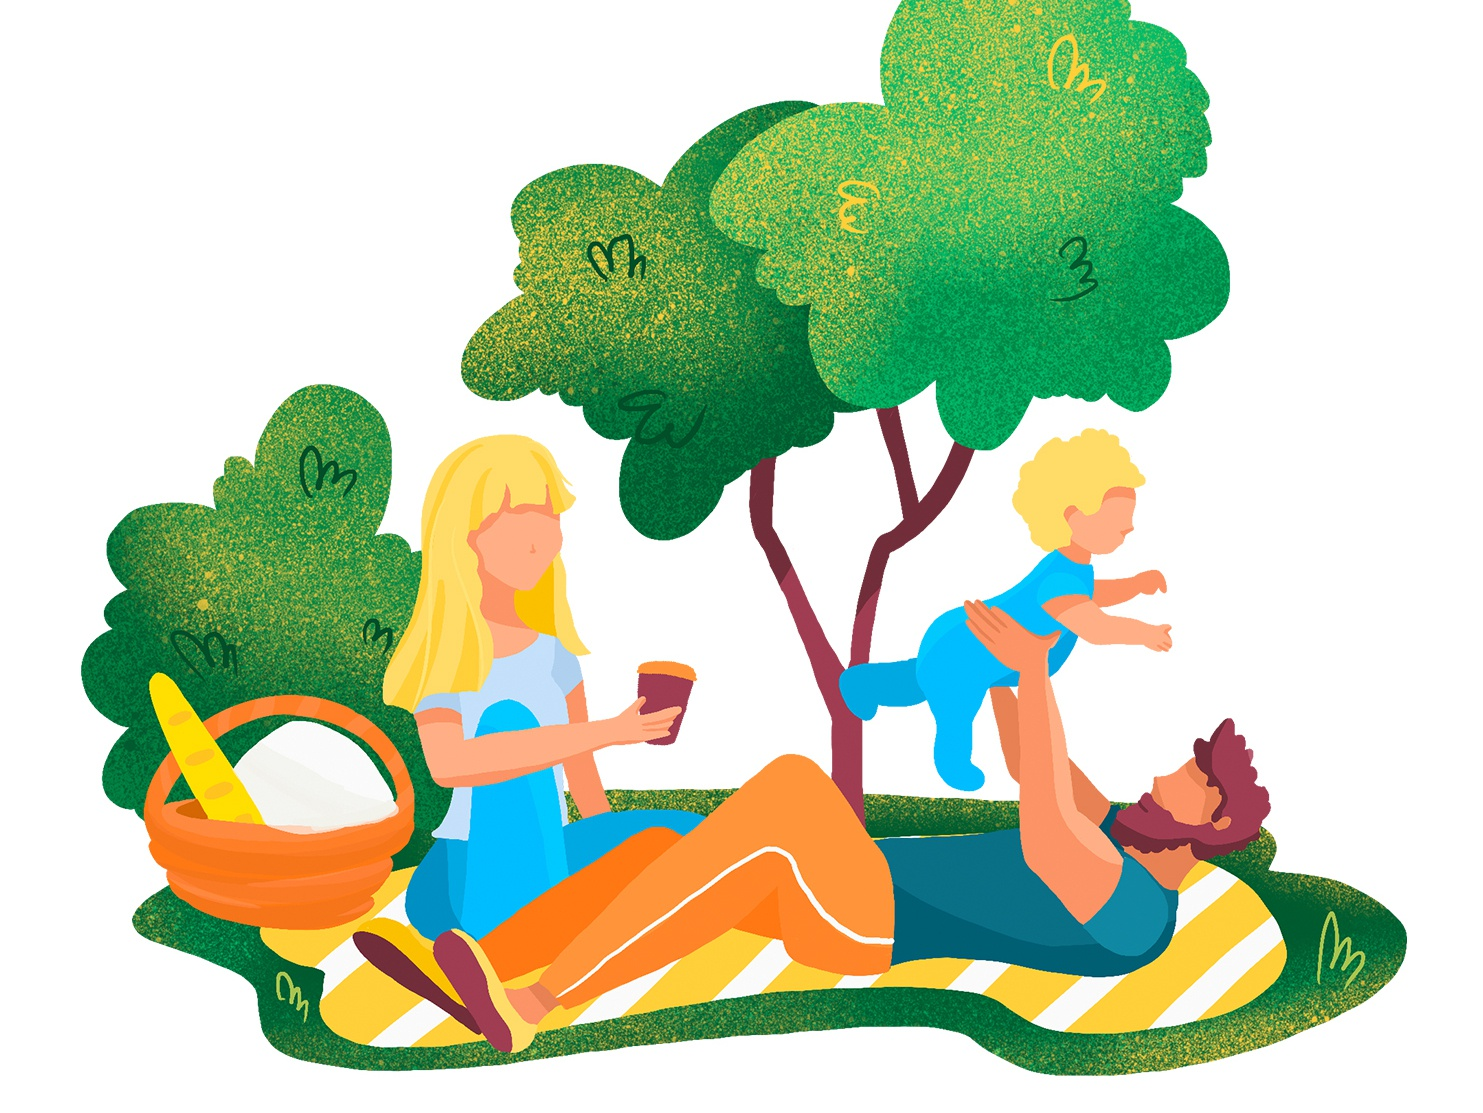 family day in the park gif animated gif relaxing relax facebook picnic dad mama park family girl boy flat ipad procreate design illustration animation